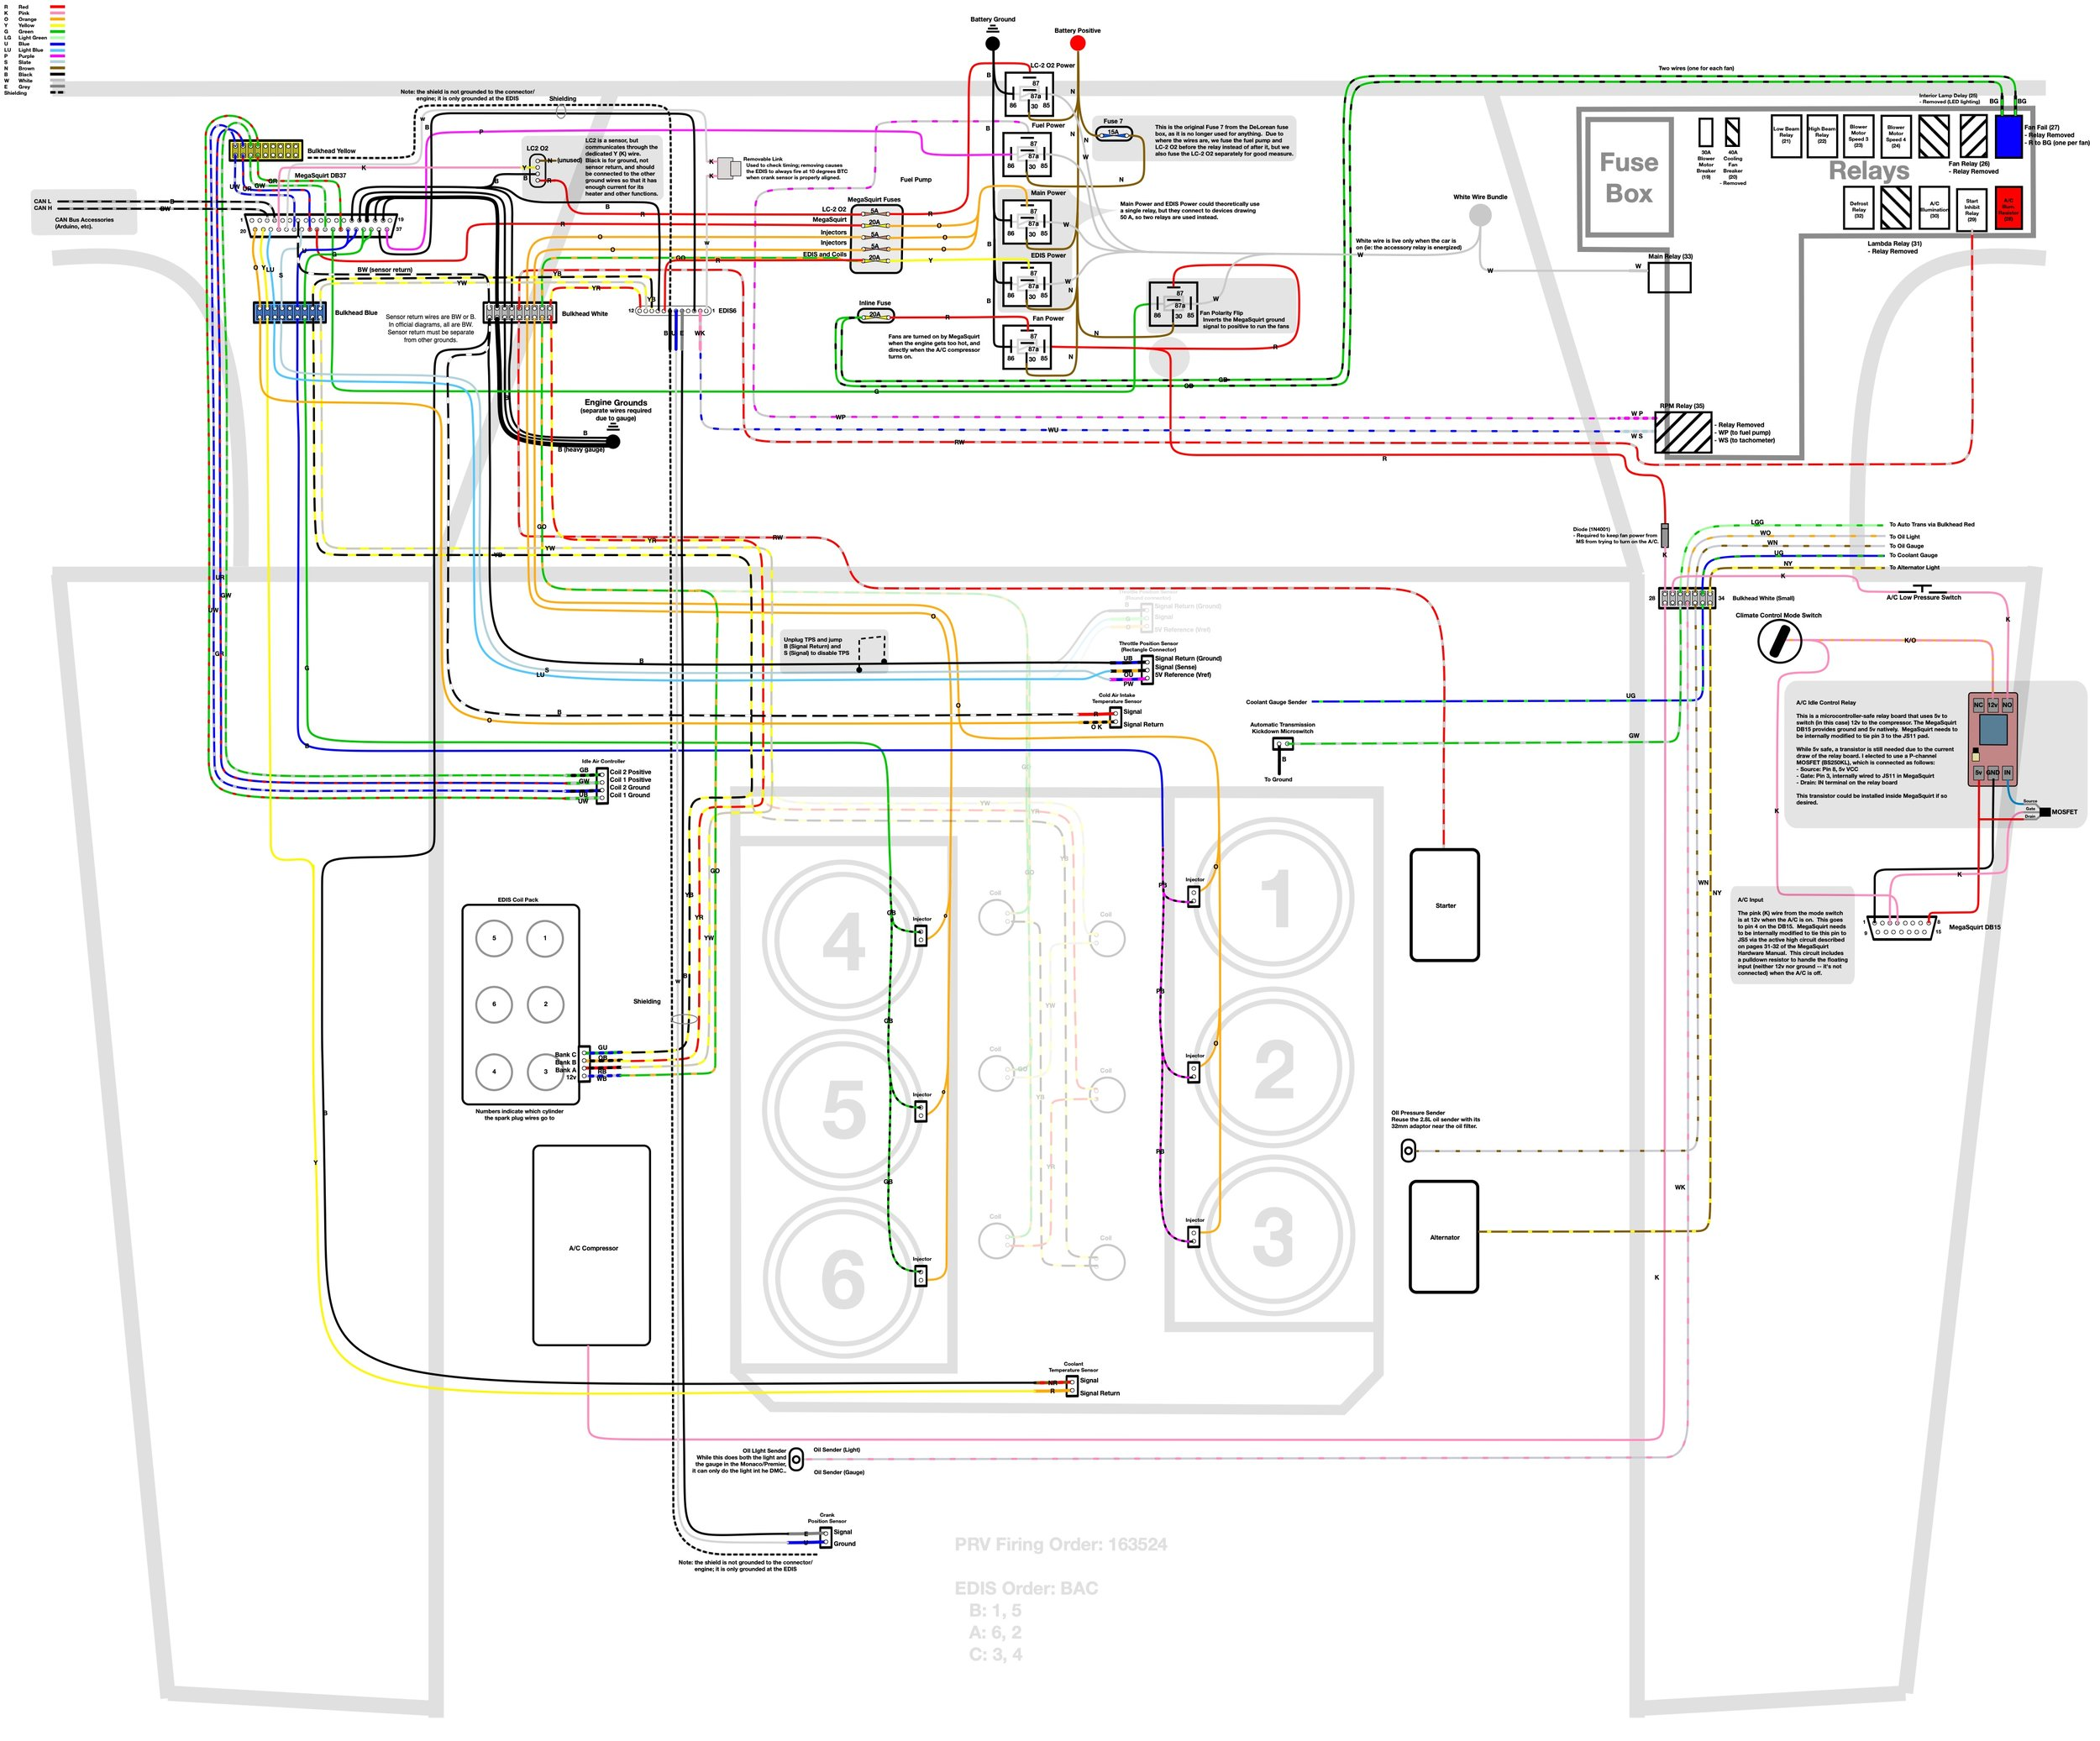 wiring, installing the new harness and fuel injector injector wiring harness diagram